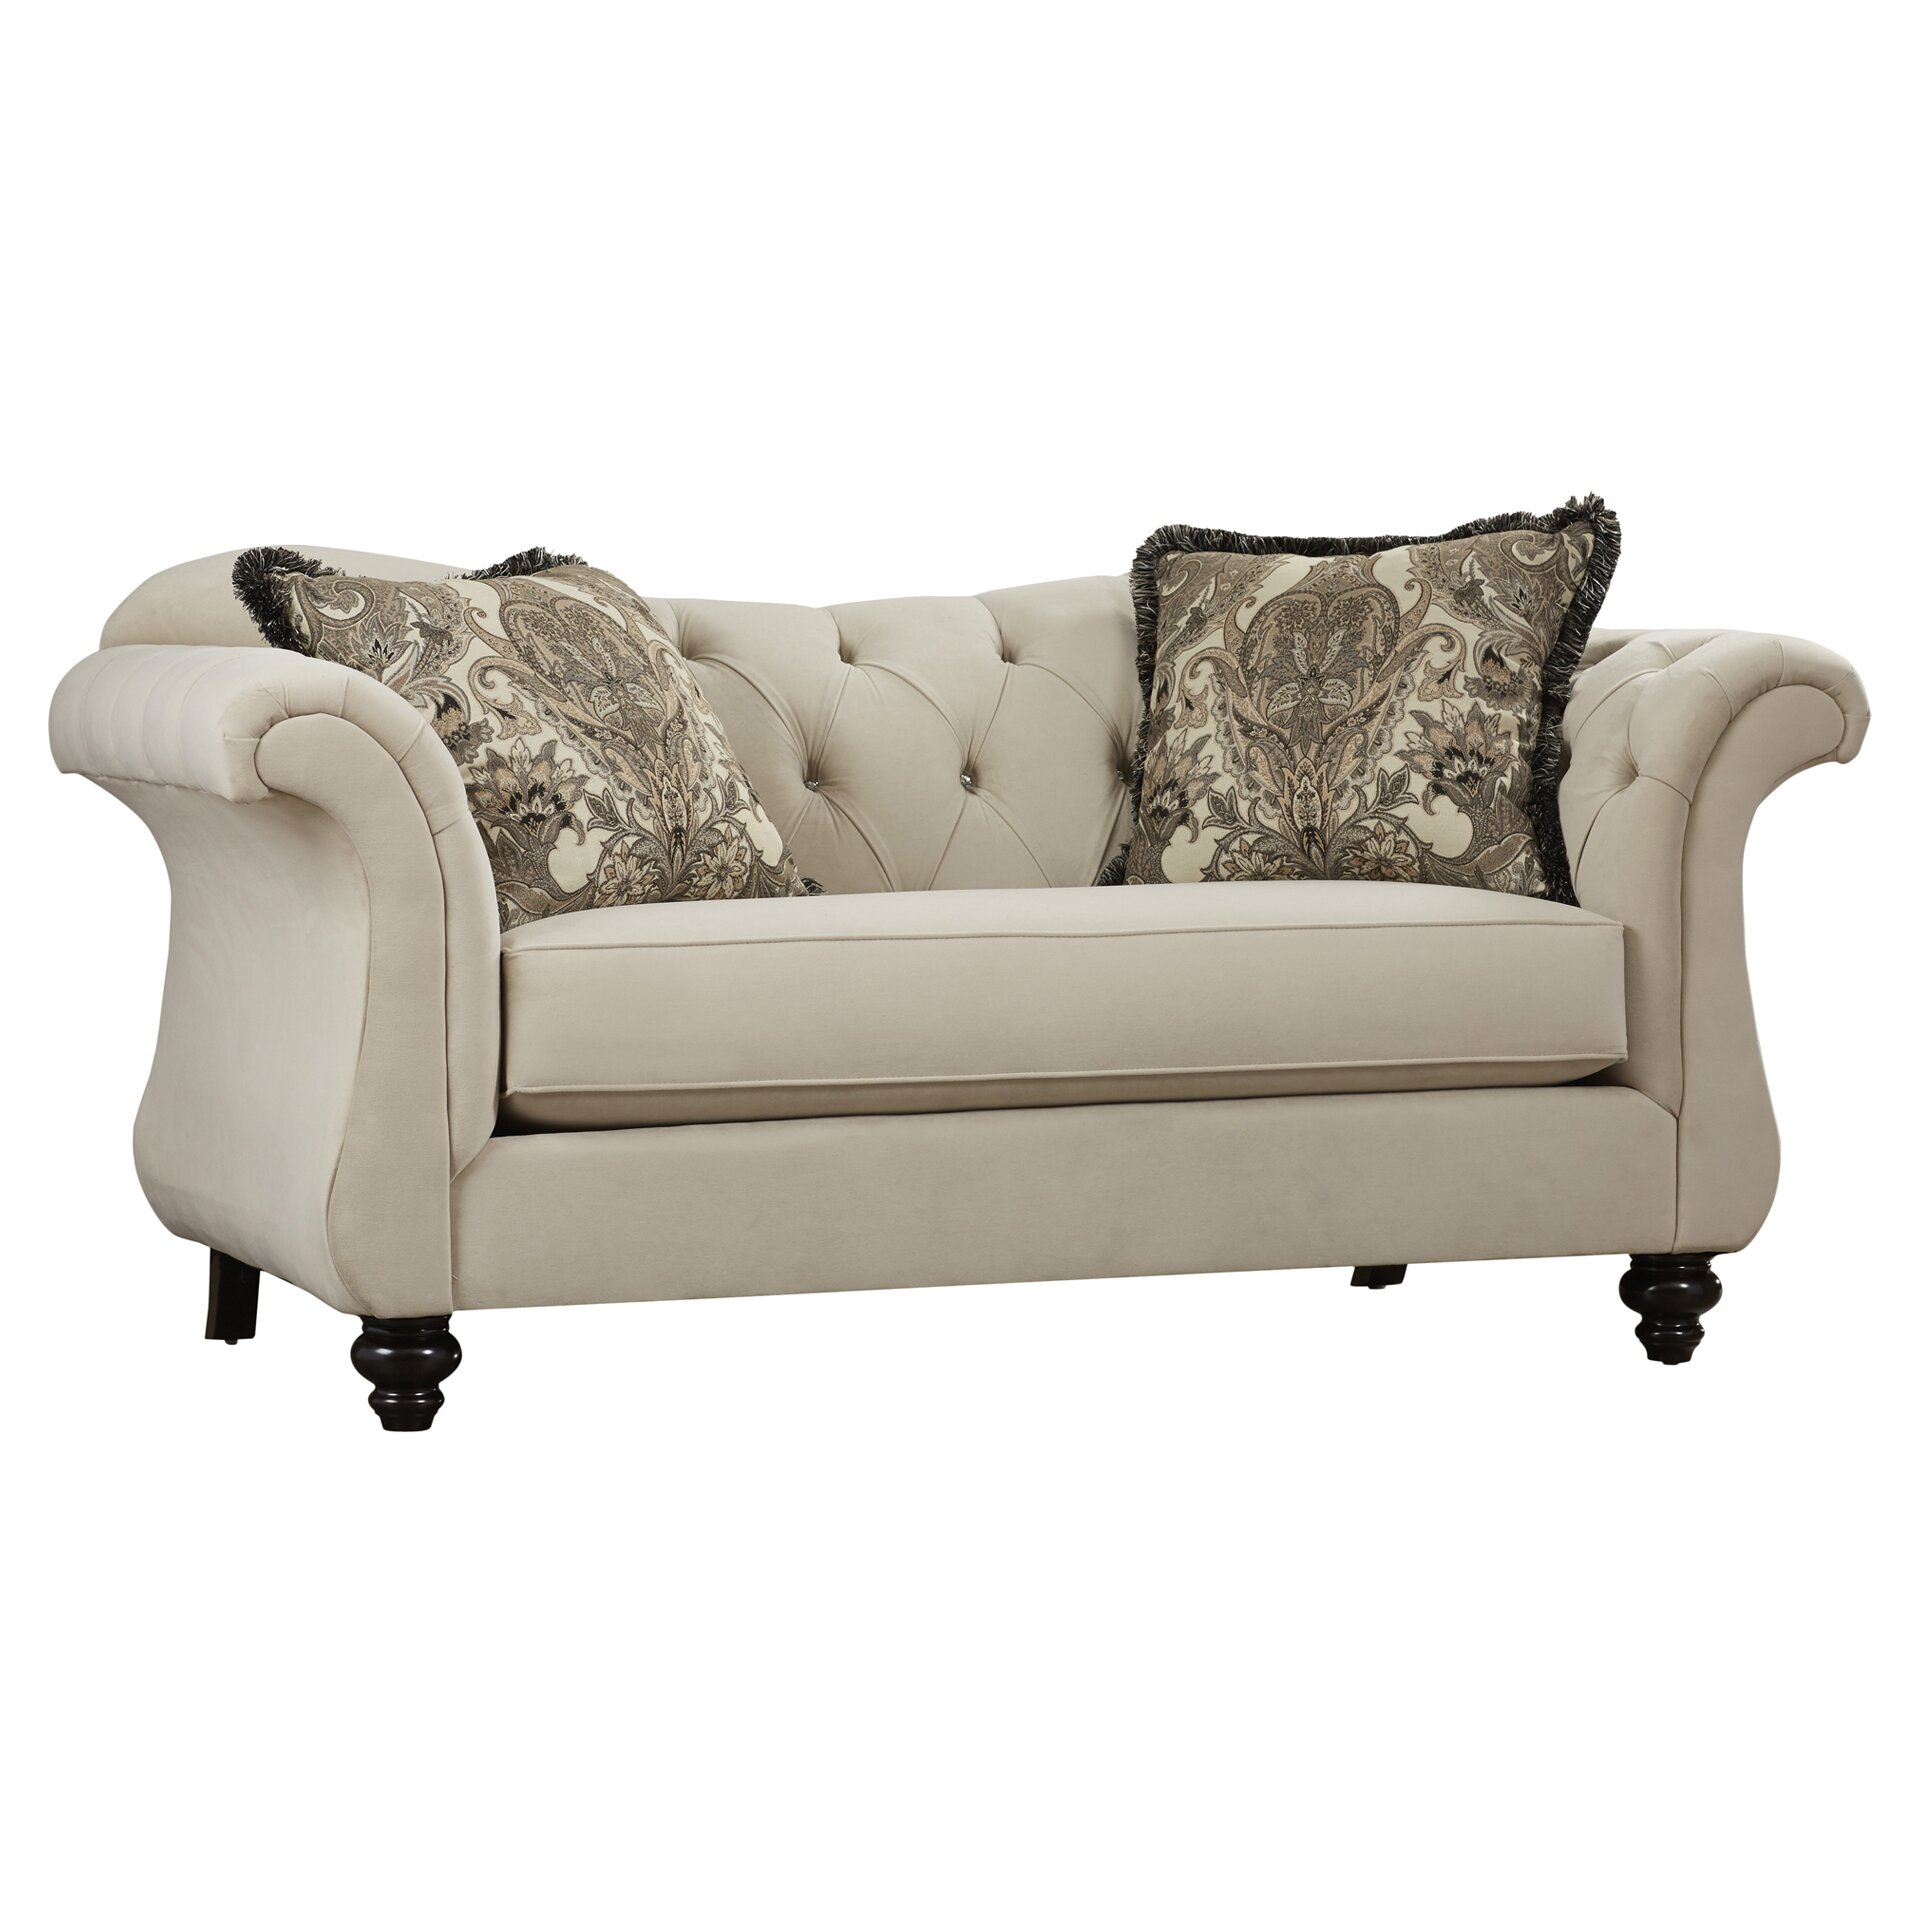 Balster Premium Tufted Upholstered Loveseat Wayfair